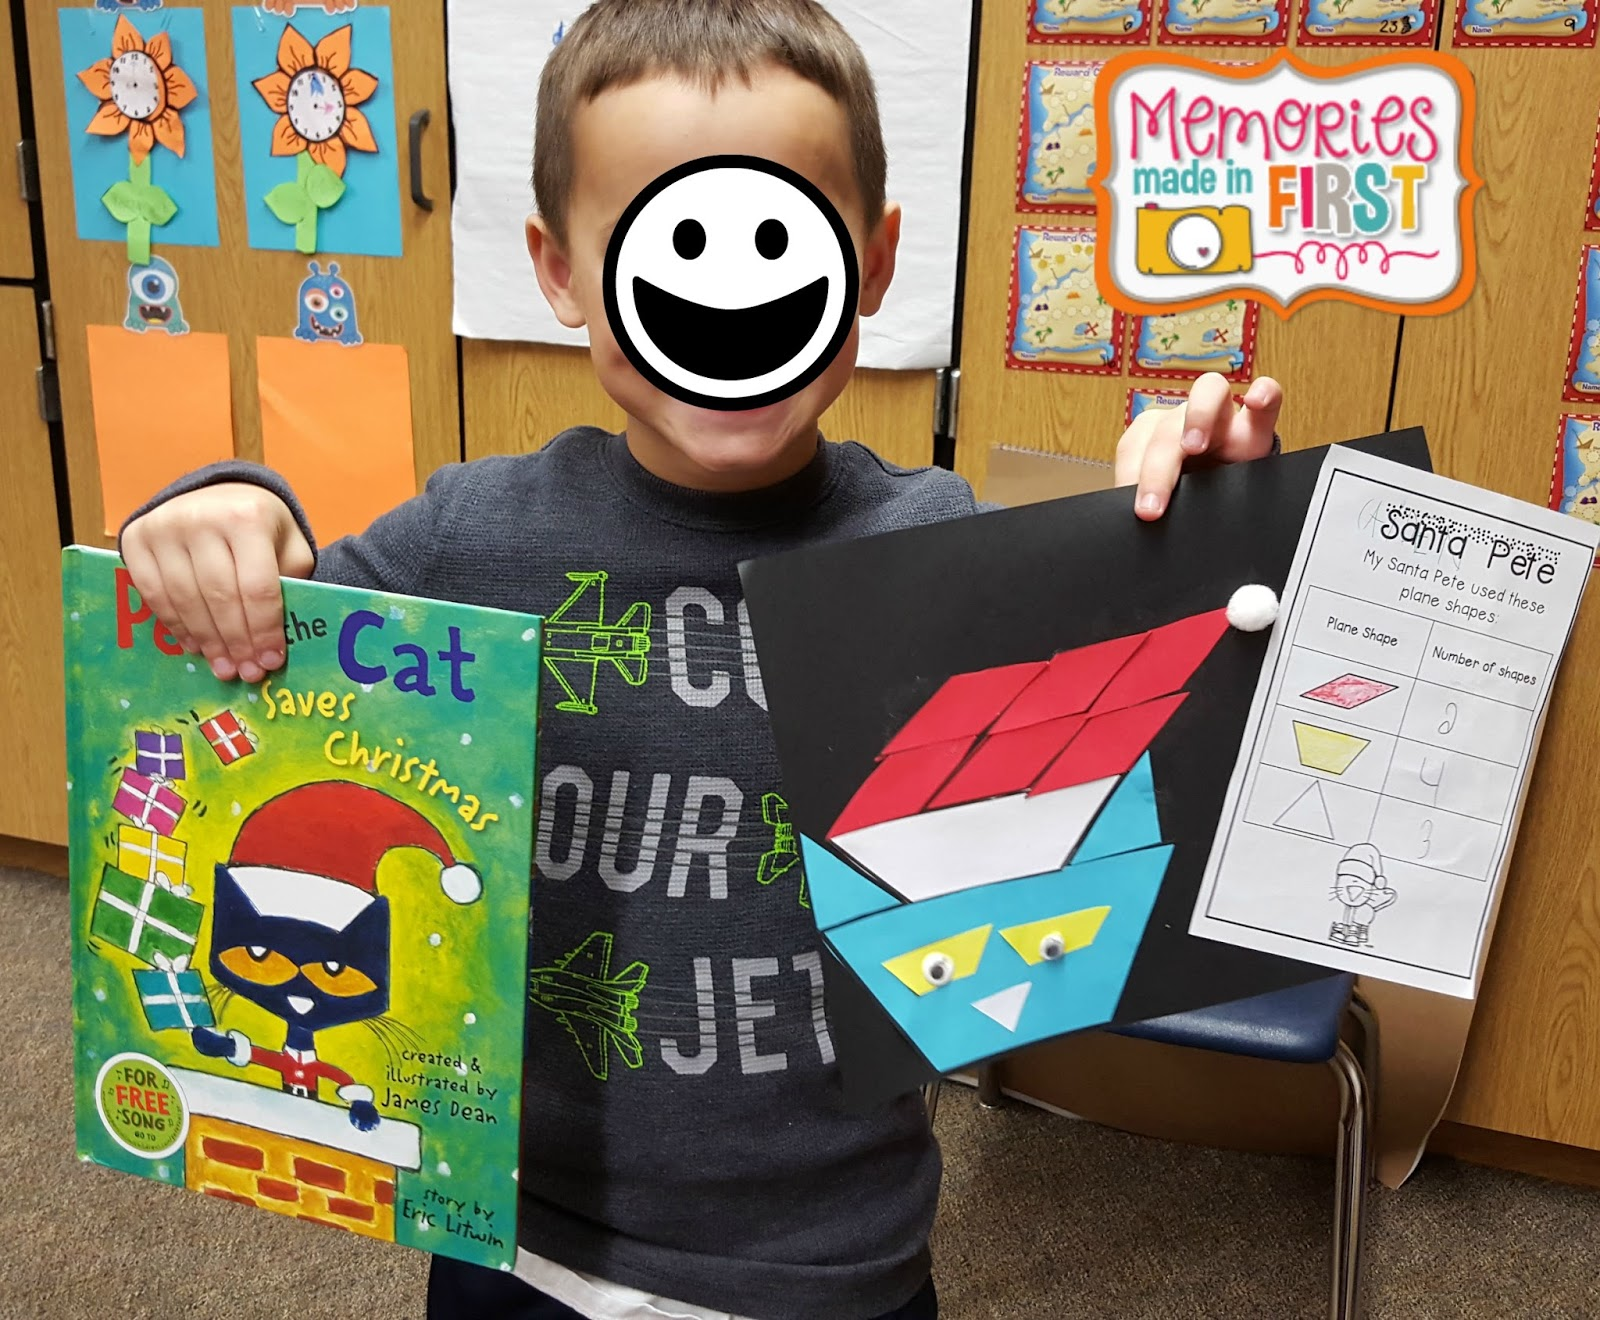 Memories Made In First Pete The Cat Saves Christmas